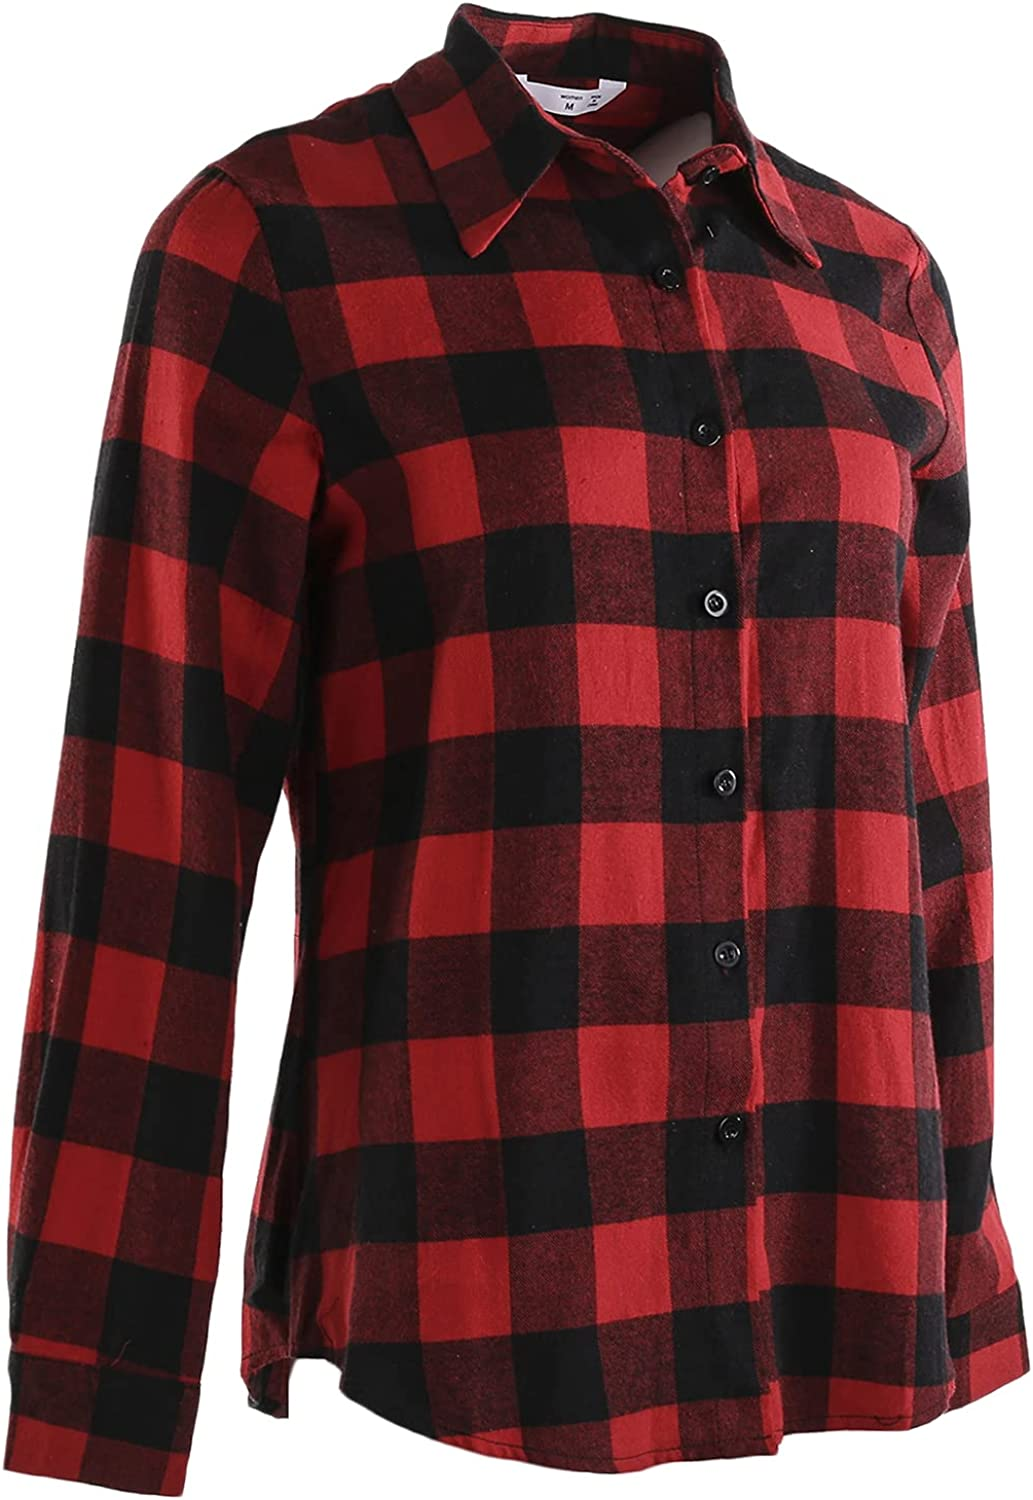 Family Matching Christmas Rapid rise Plaid Blouse Turn Down Sleeve Long Nec Import